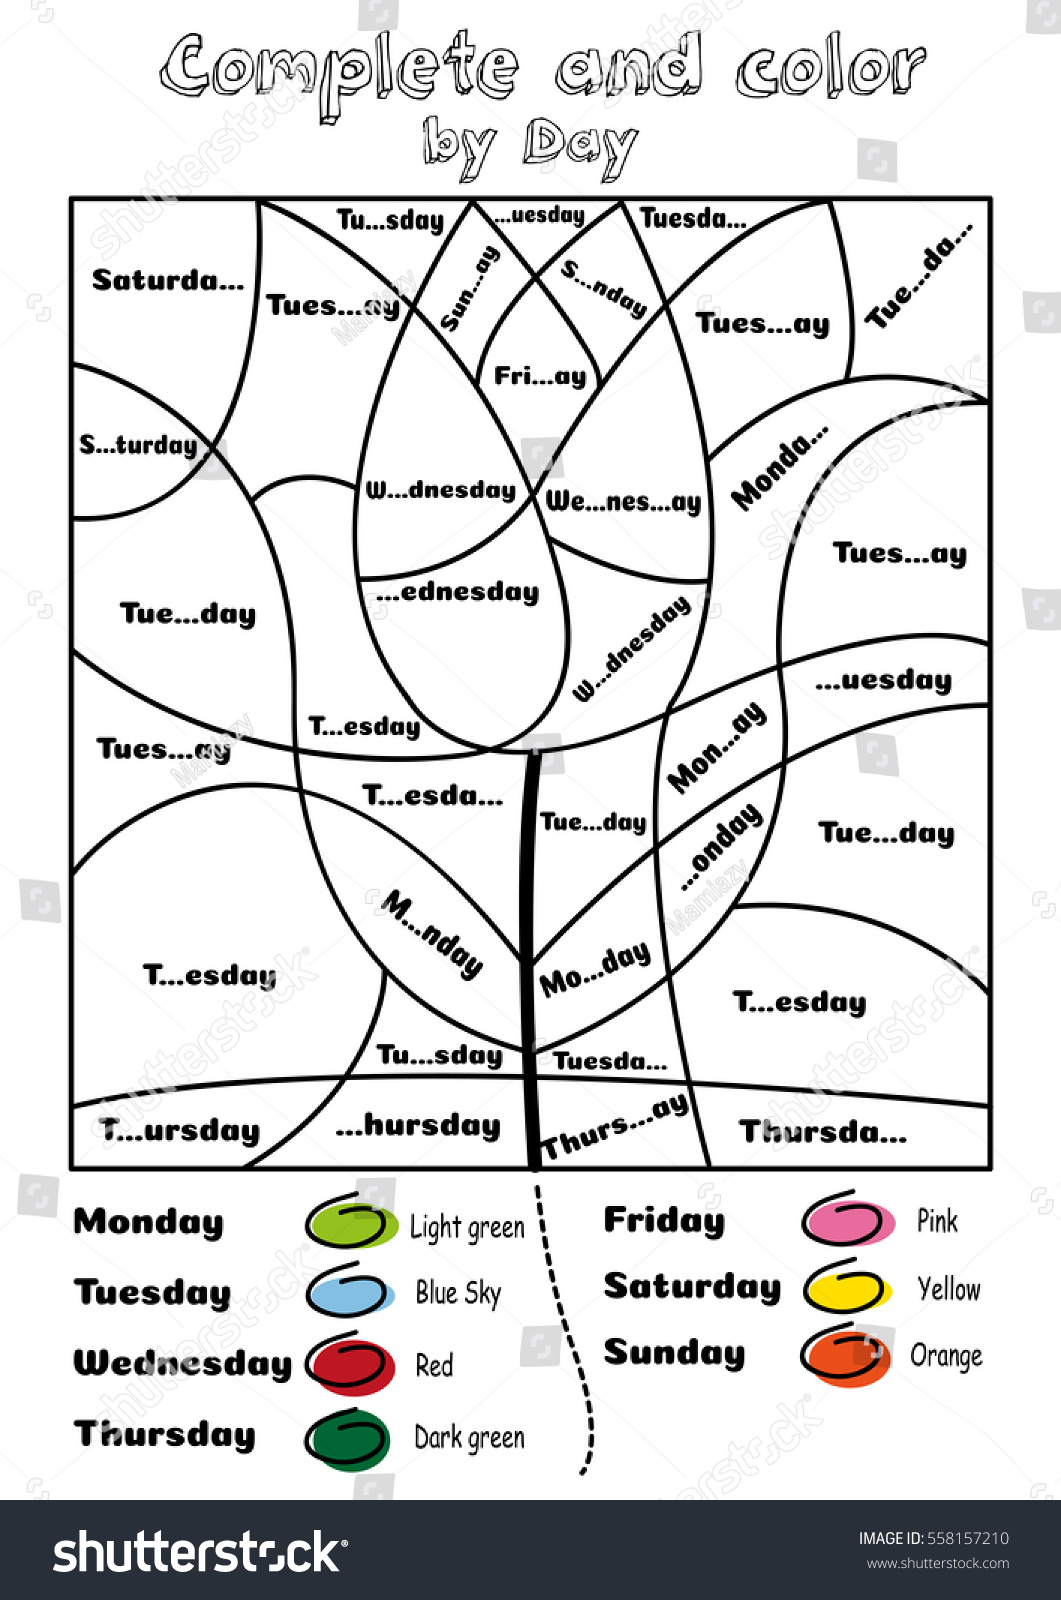 Rez Wvg besides C additionally Vocabulary Printables Weather Readandmatch besides Thumb furthermore Pumpkin Patch Maze Mazes Autumn. on happy tuesday preschool worksheets